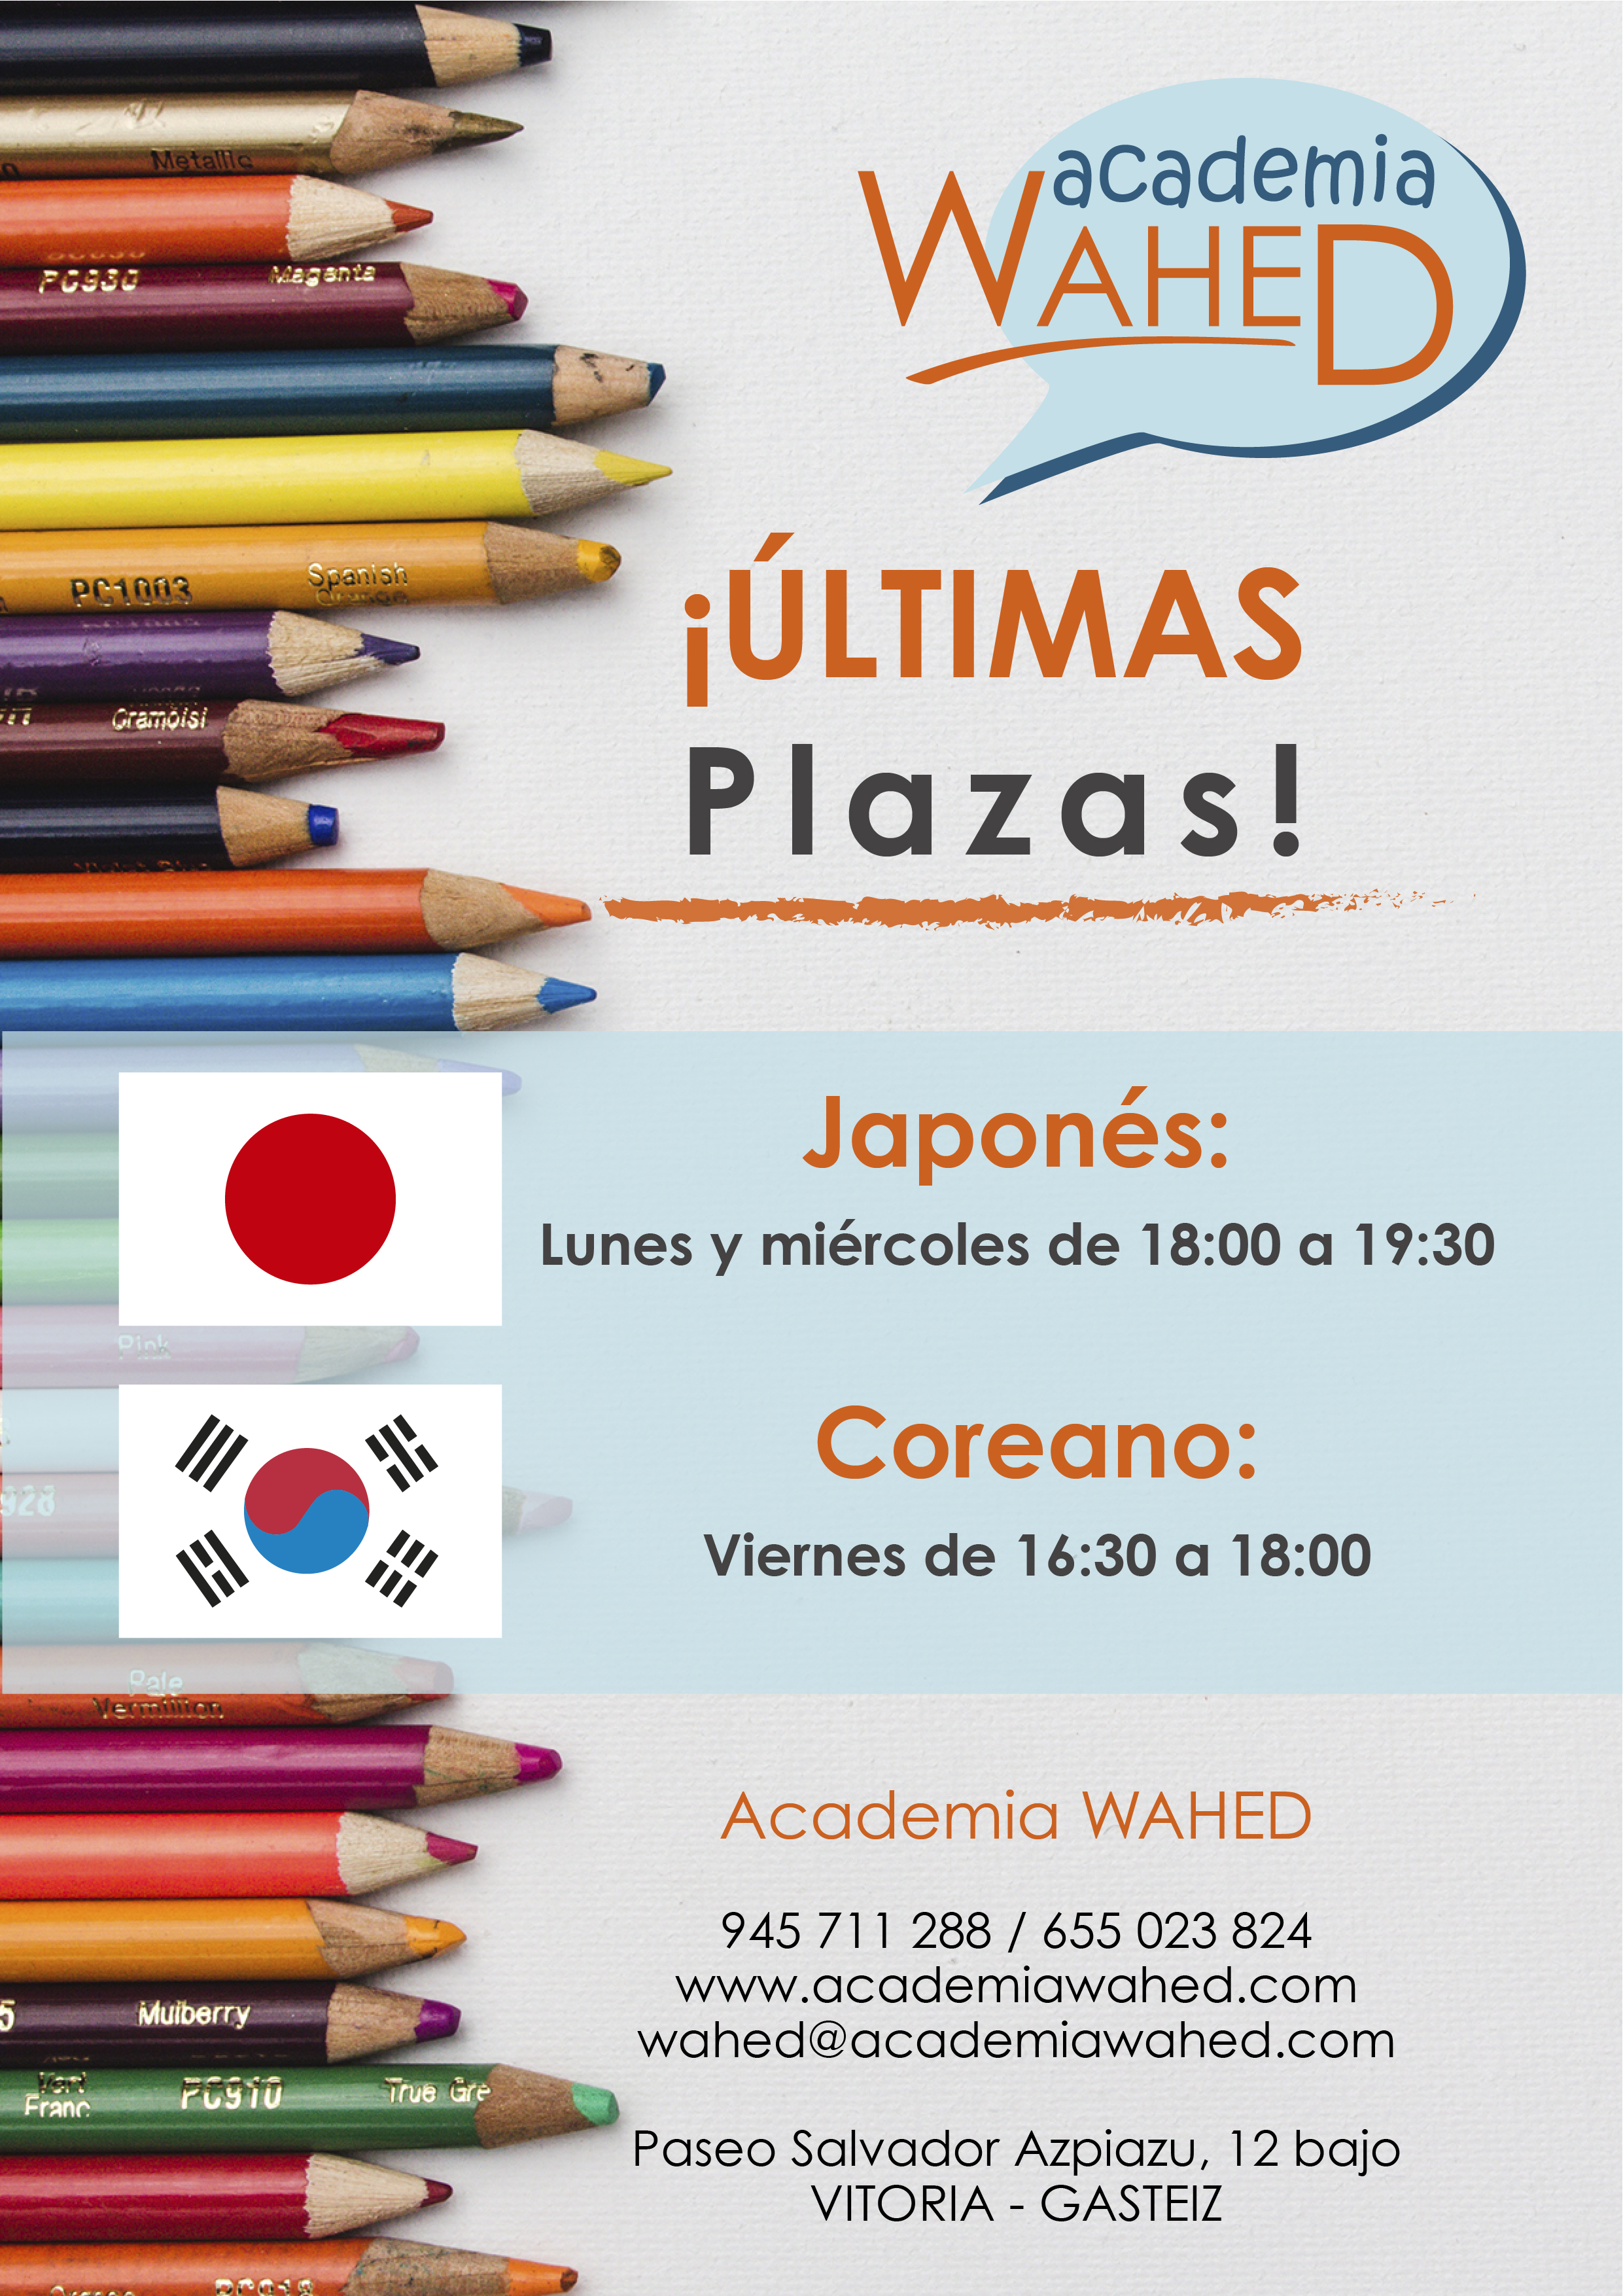 Wahed_ultimas plazas_sept18